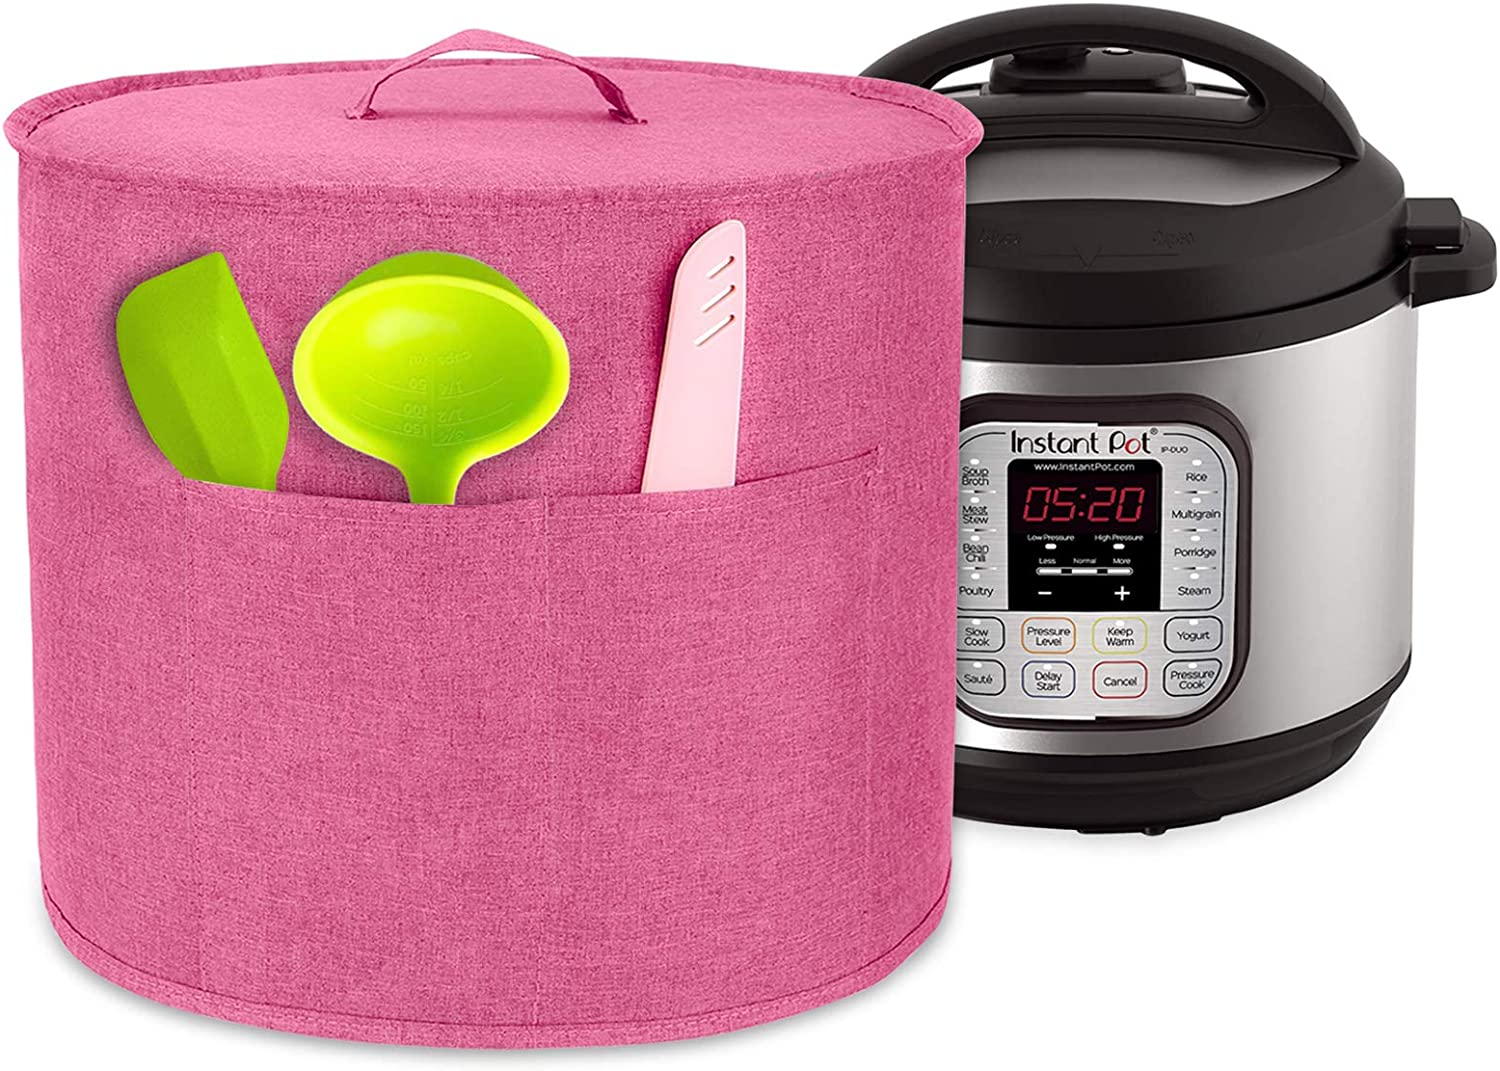 Luxja Dust Cover for 8 Quart Instant Pot, Cloth Cover with Pockets for Instant Pot (8 Quart) and Extra Accessories, Pink (Large)